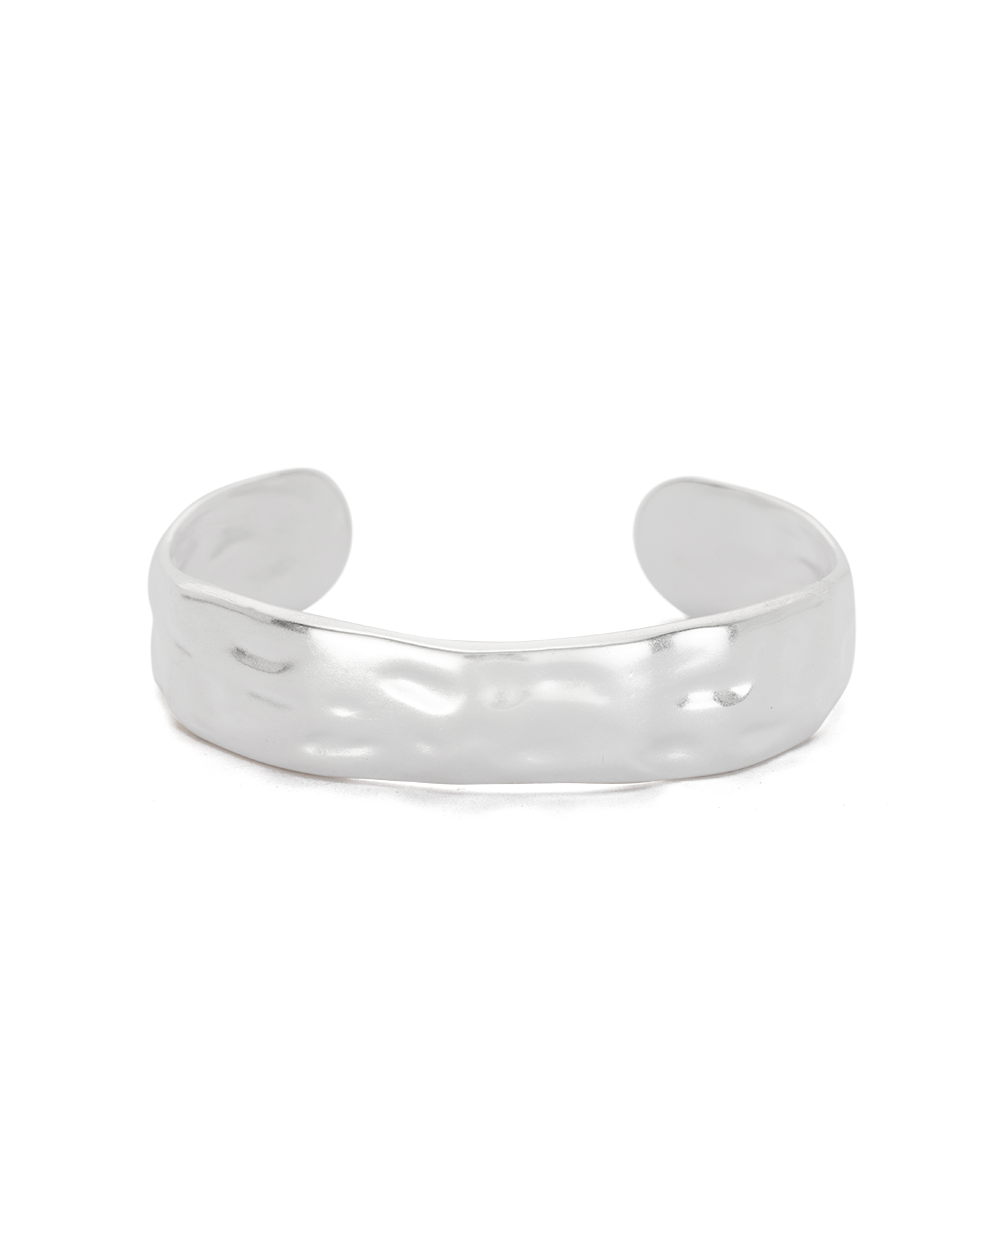 ELEMENTS CUFF MEDIUM (STERLING SILVER) - FRONT